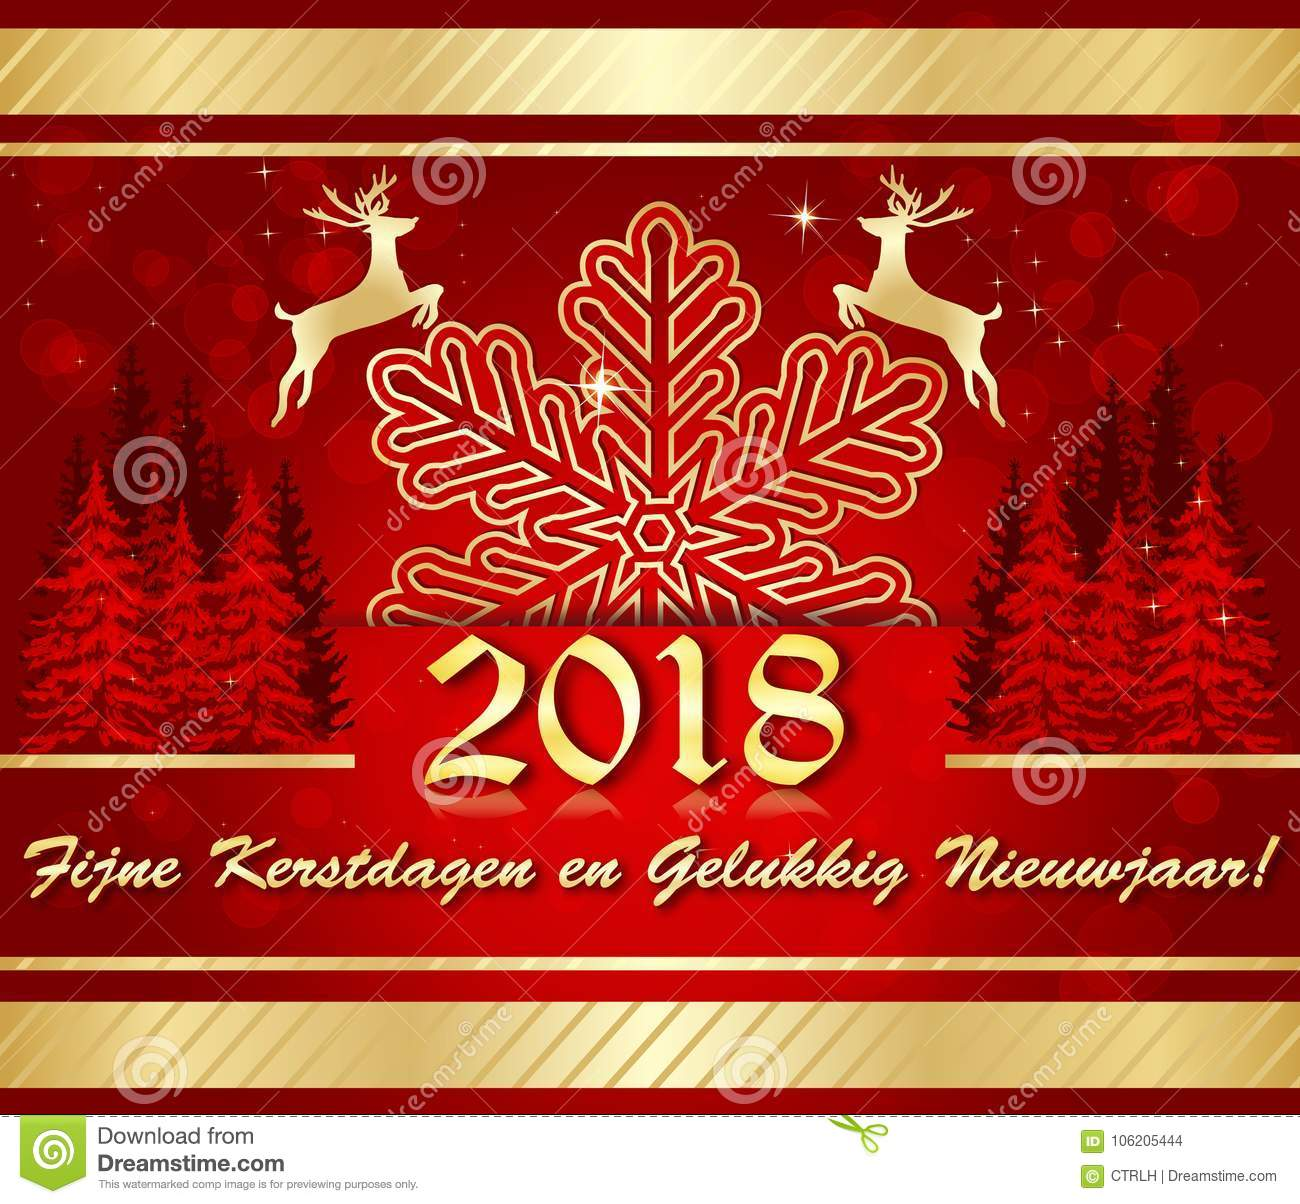 merry christmas and happy new year 2018 written in dutch greeting card